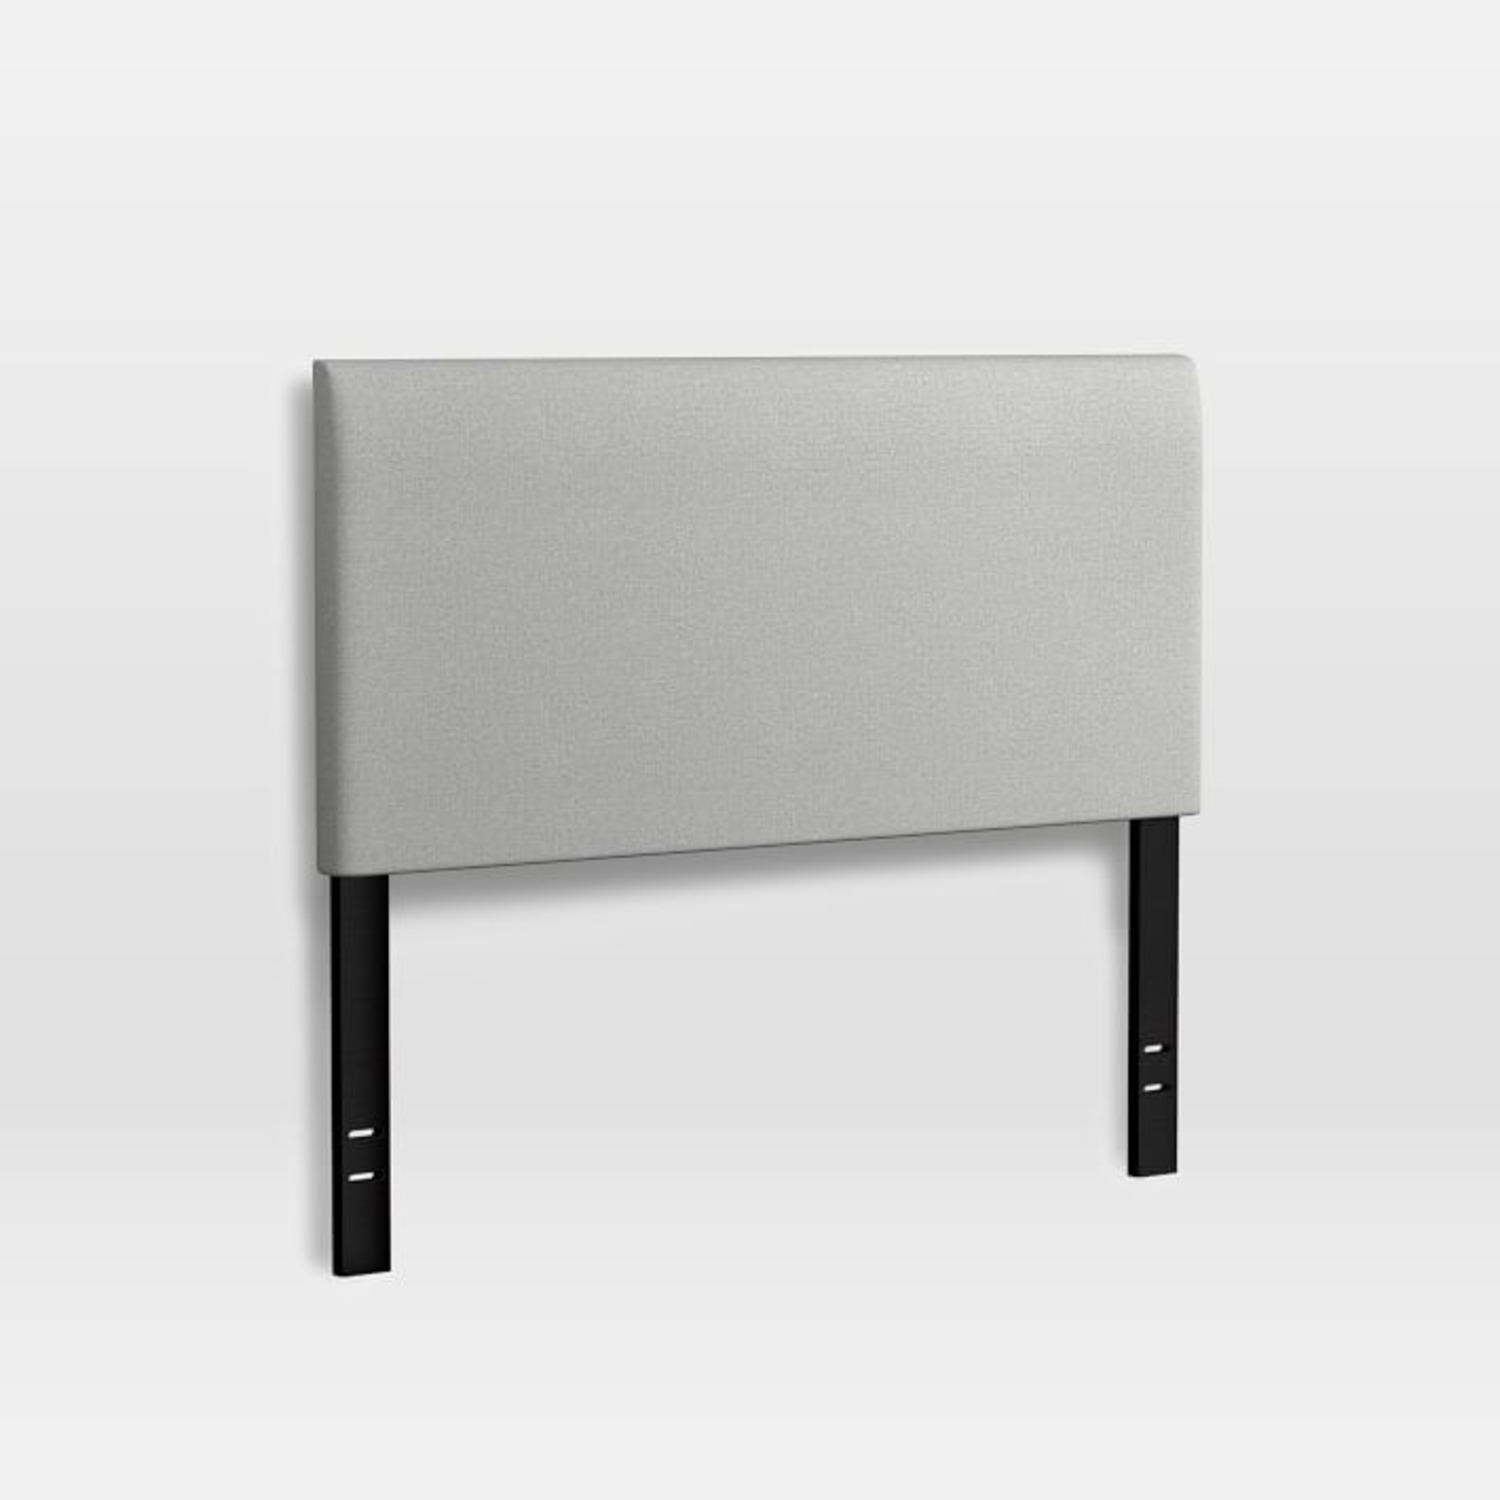 West Elm Andes Deco Headboard - image-0